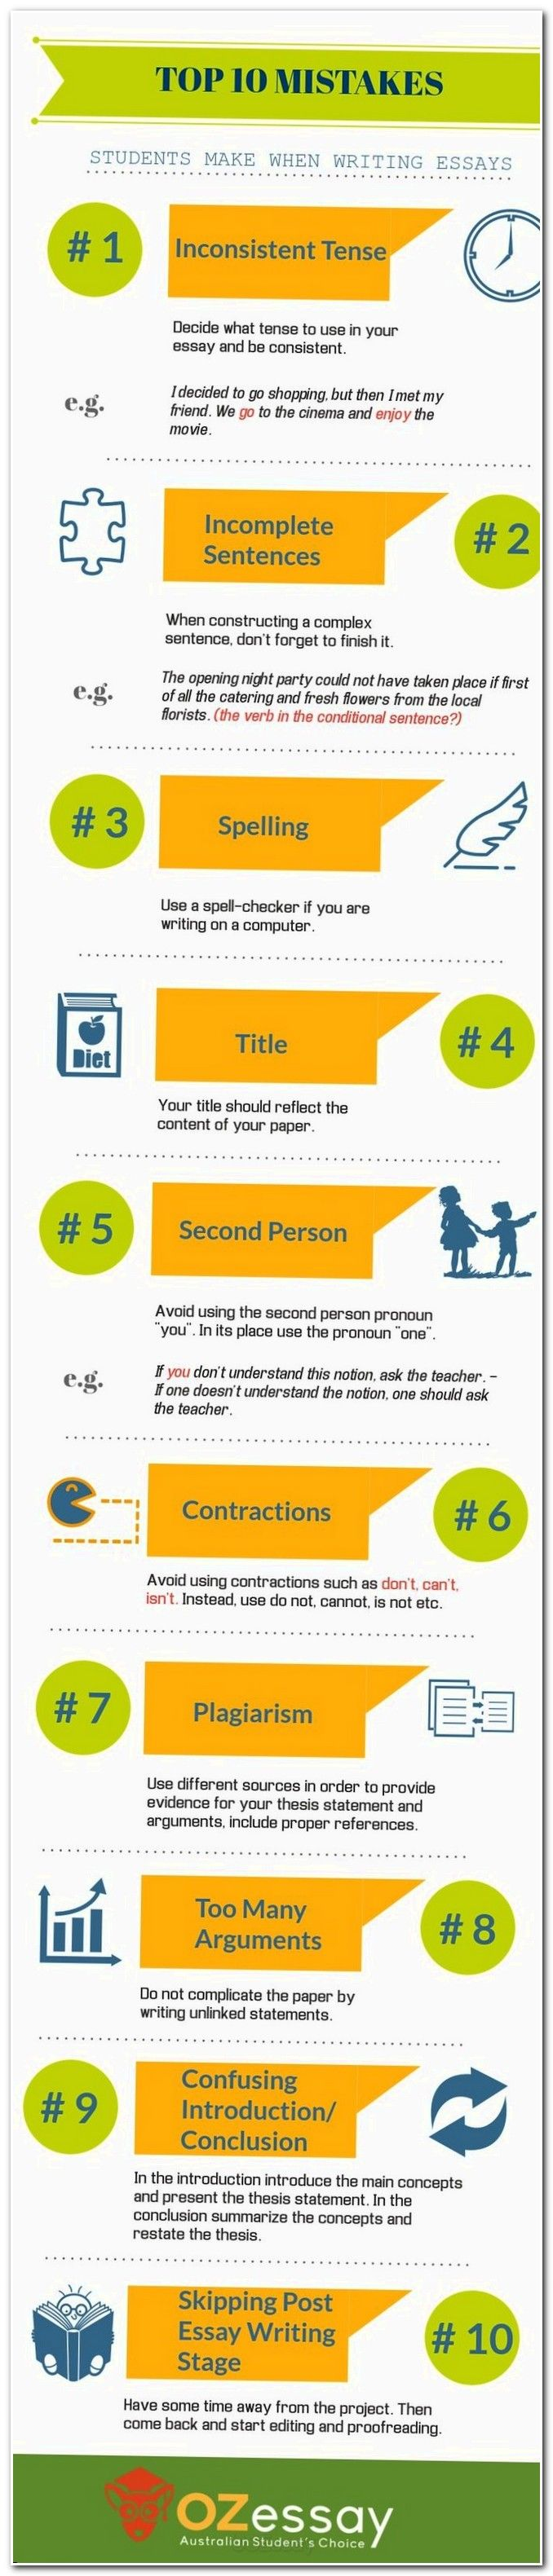 the best cause and effect paragraph ideas cause essay essaywriting persuasive speech examples book contests 2017 help me write a thesis statement sample of cause and effect paragraph comparative